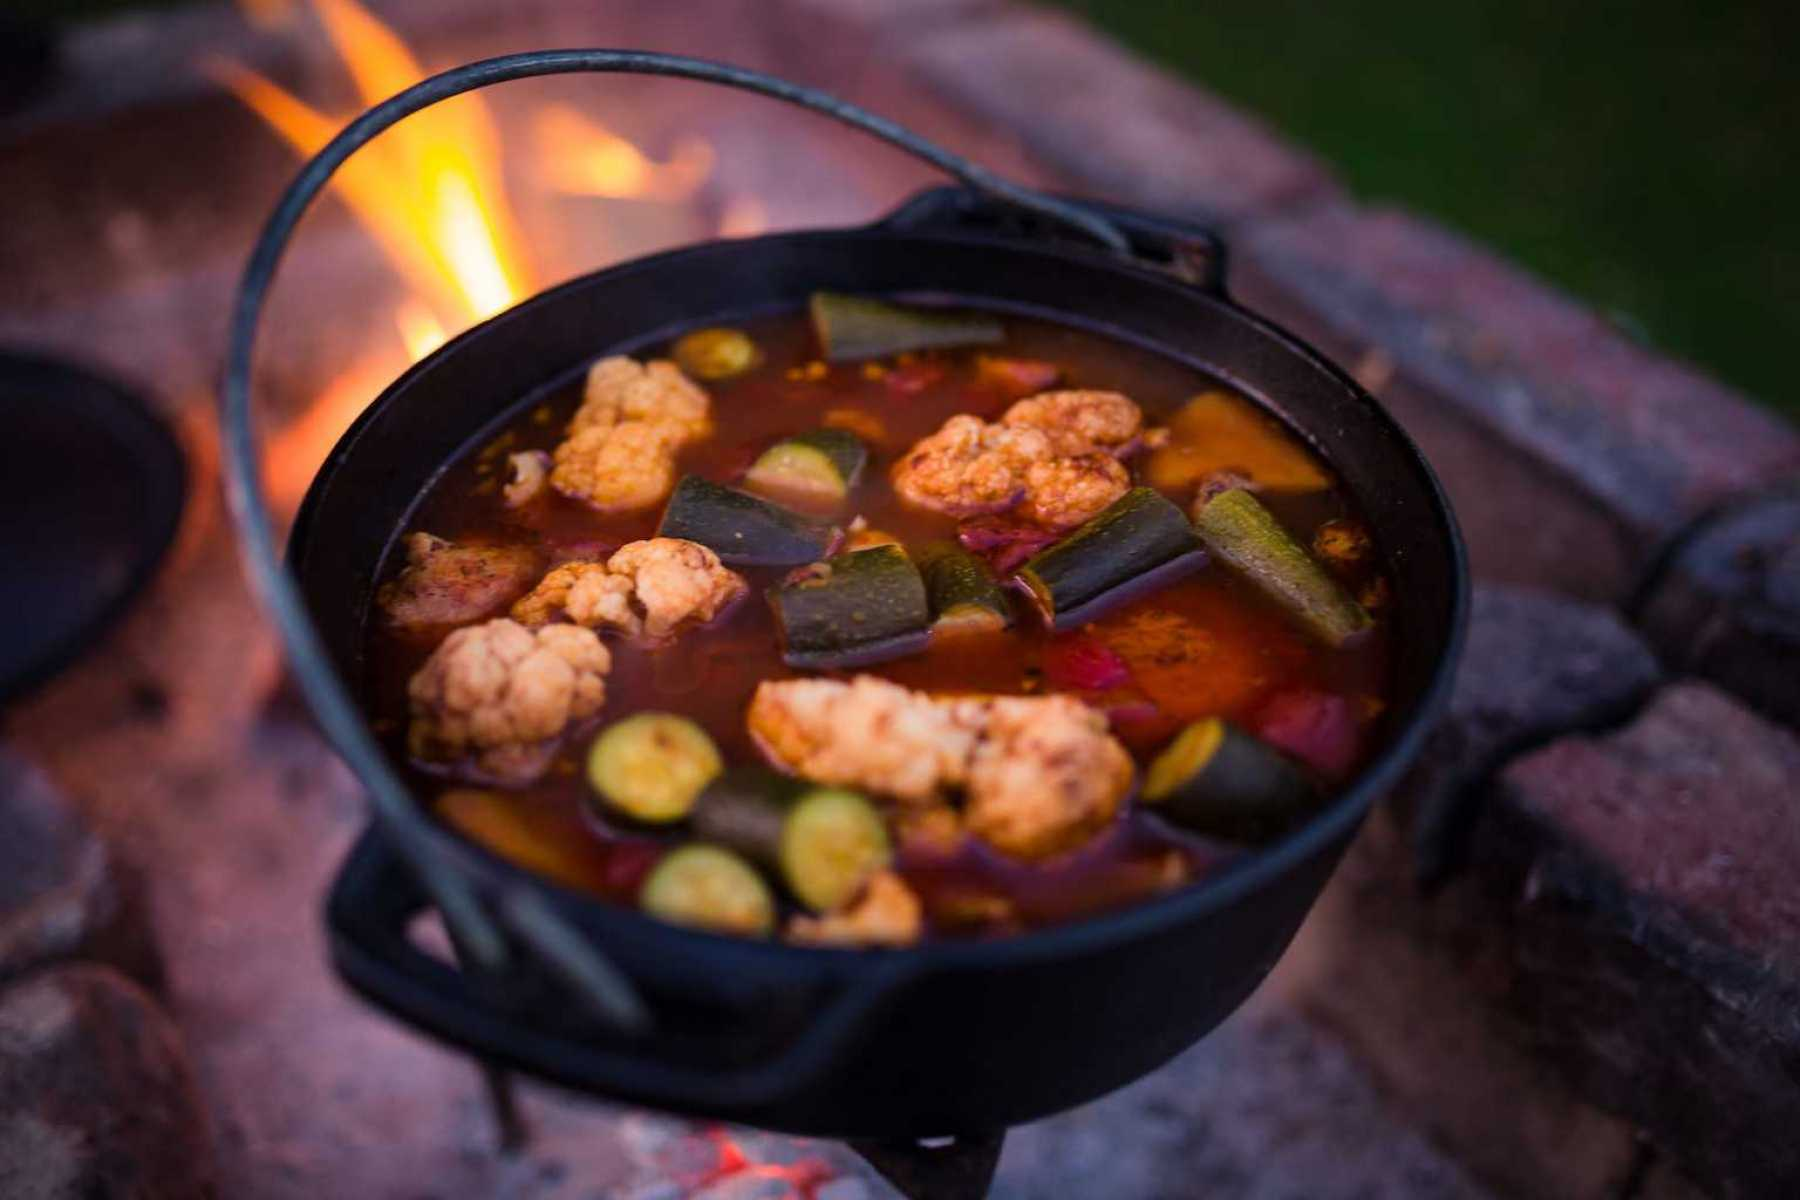 Potjie stew for dinner